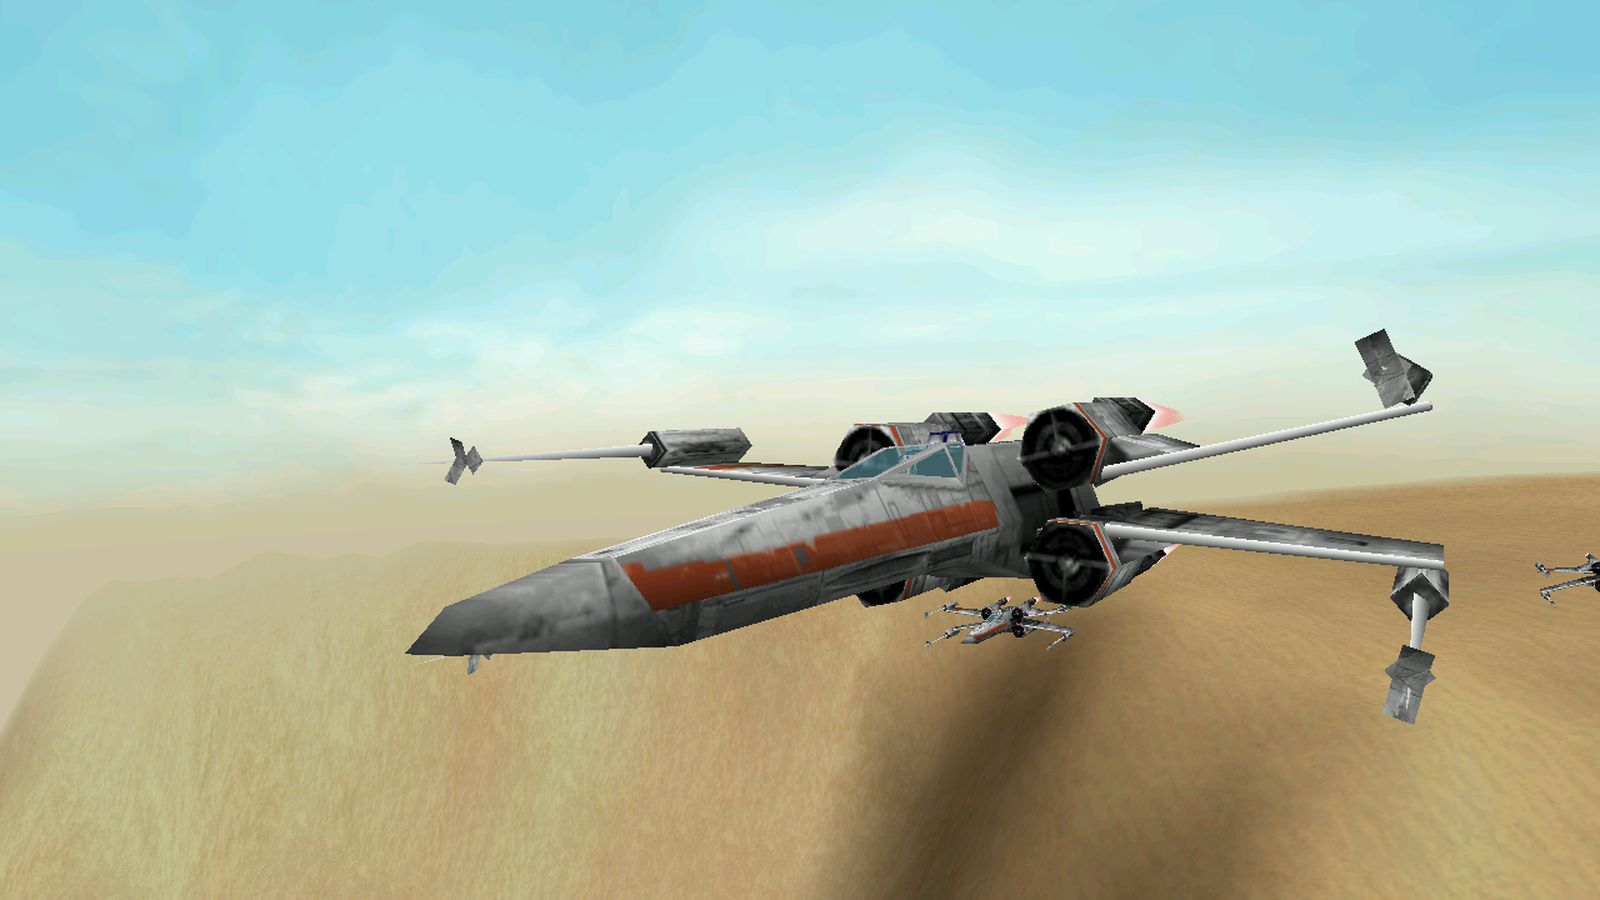 Star Wars Rogue Squadron 3d And Rebellion Are Latest Re Released Star Wars Classics Polygon